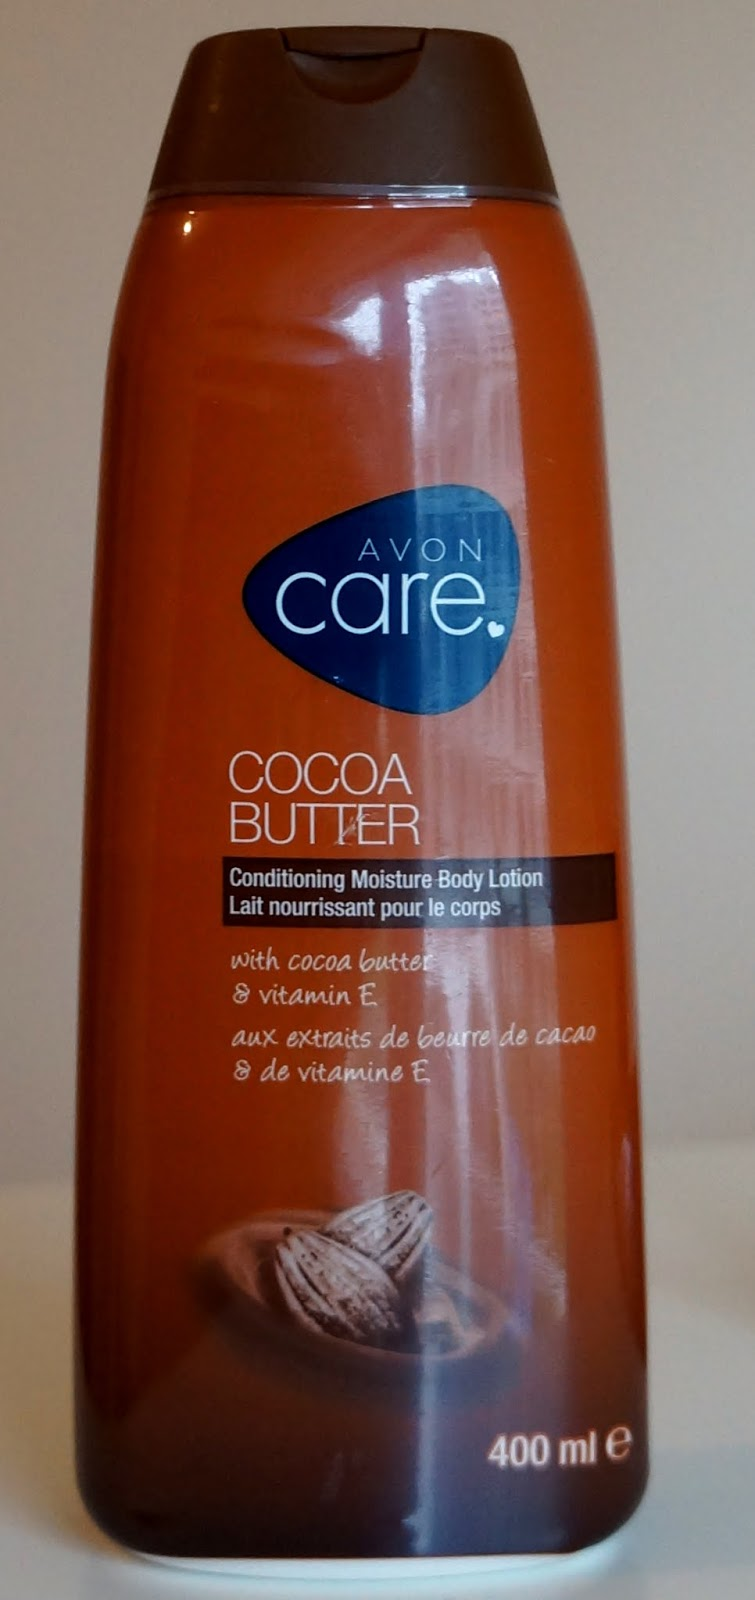 https://divainside2.files.wordpress.com/2014/06/avon-cocoa-butter-8.jpg